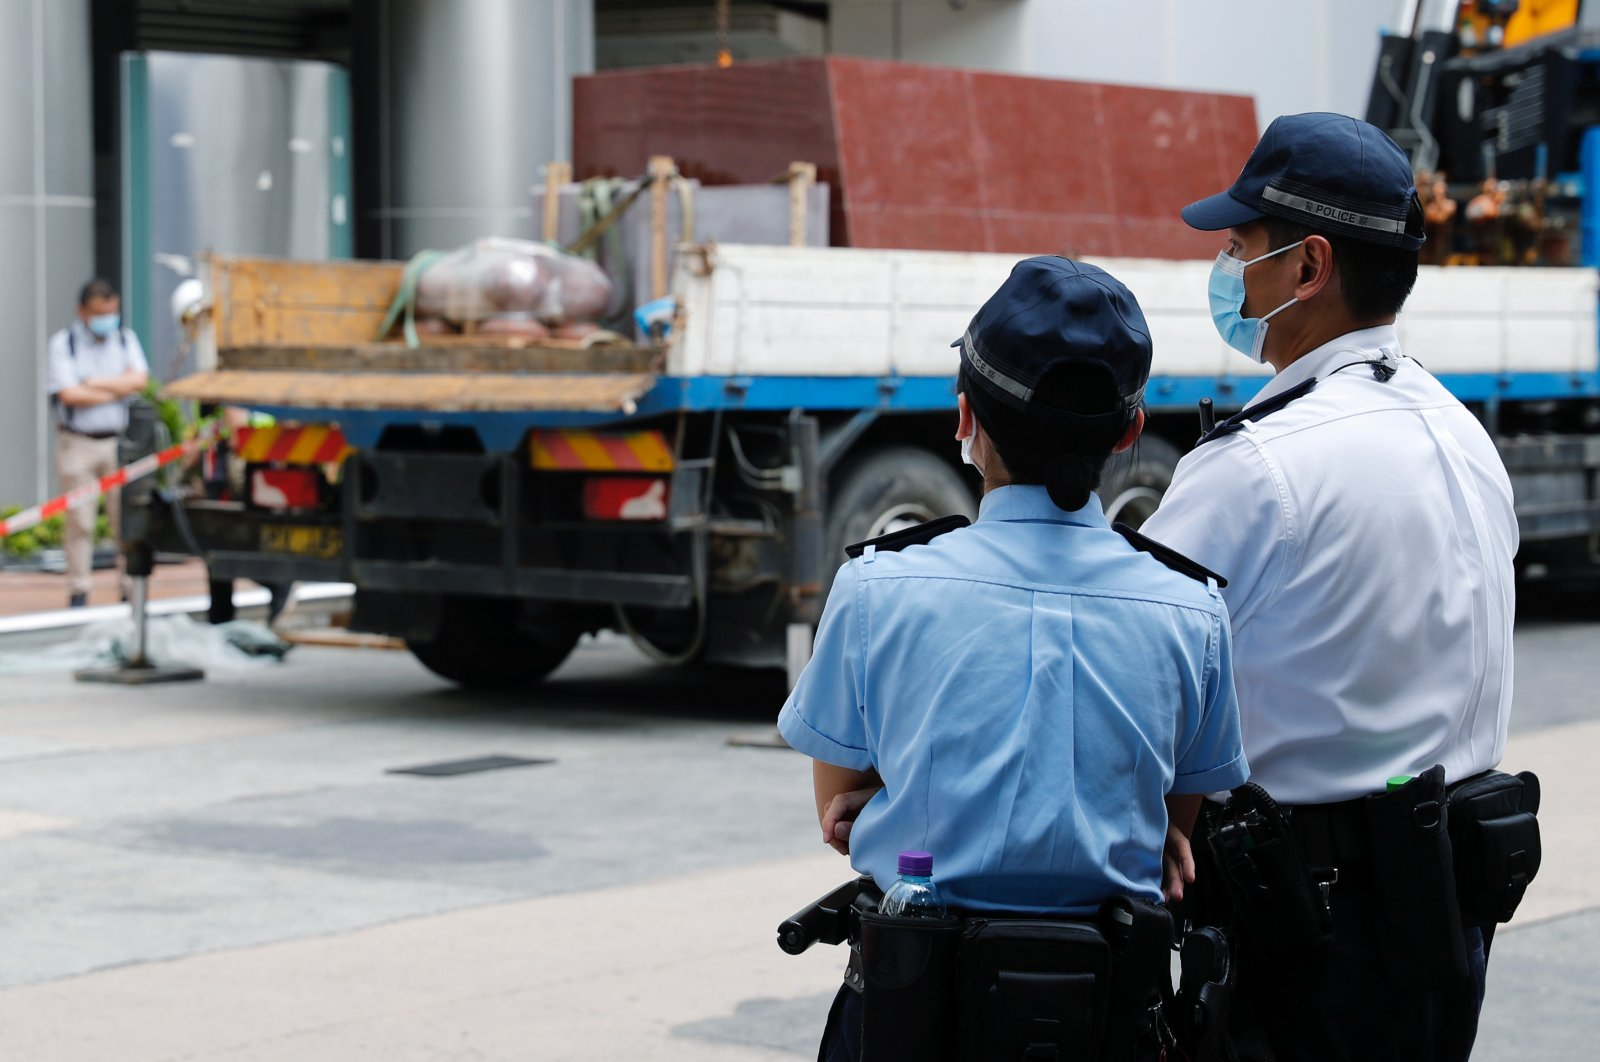 Police officers stand guard outside Metropark Hotel Causeway Bay Hong Kong believed to be used as the temporary national security agency in the city, Hong Kong, July 7, 2020. (REUTERS Photo)